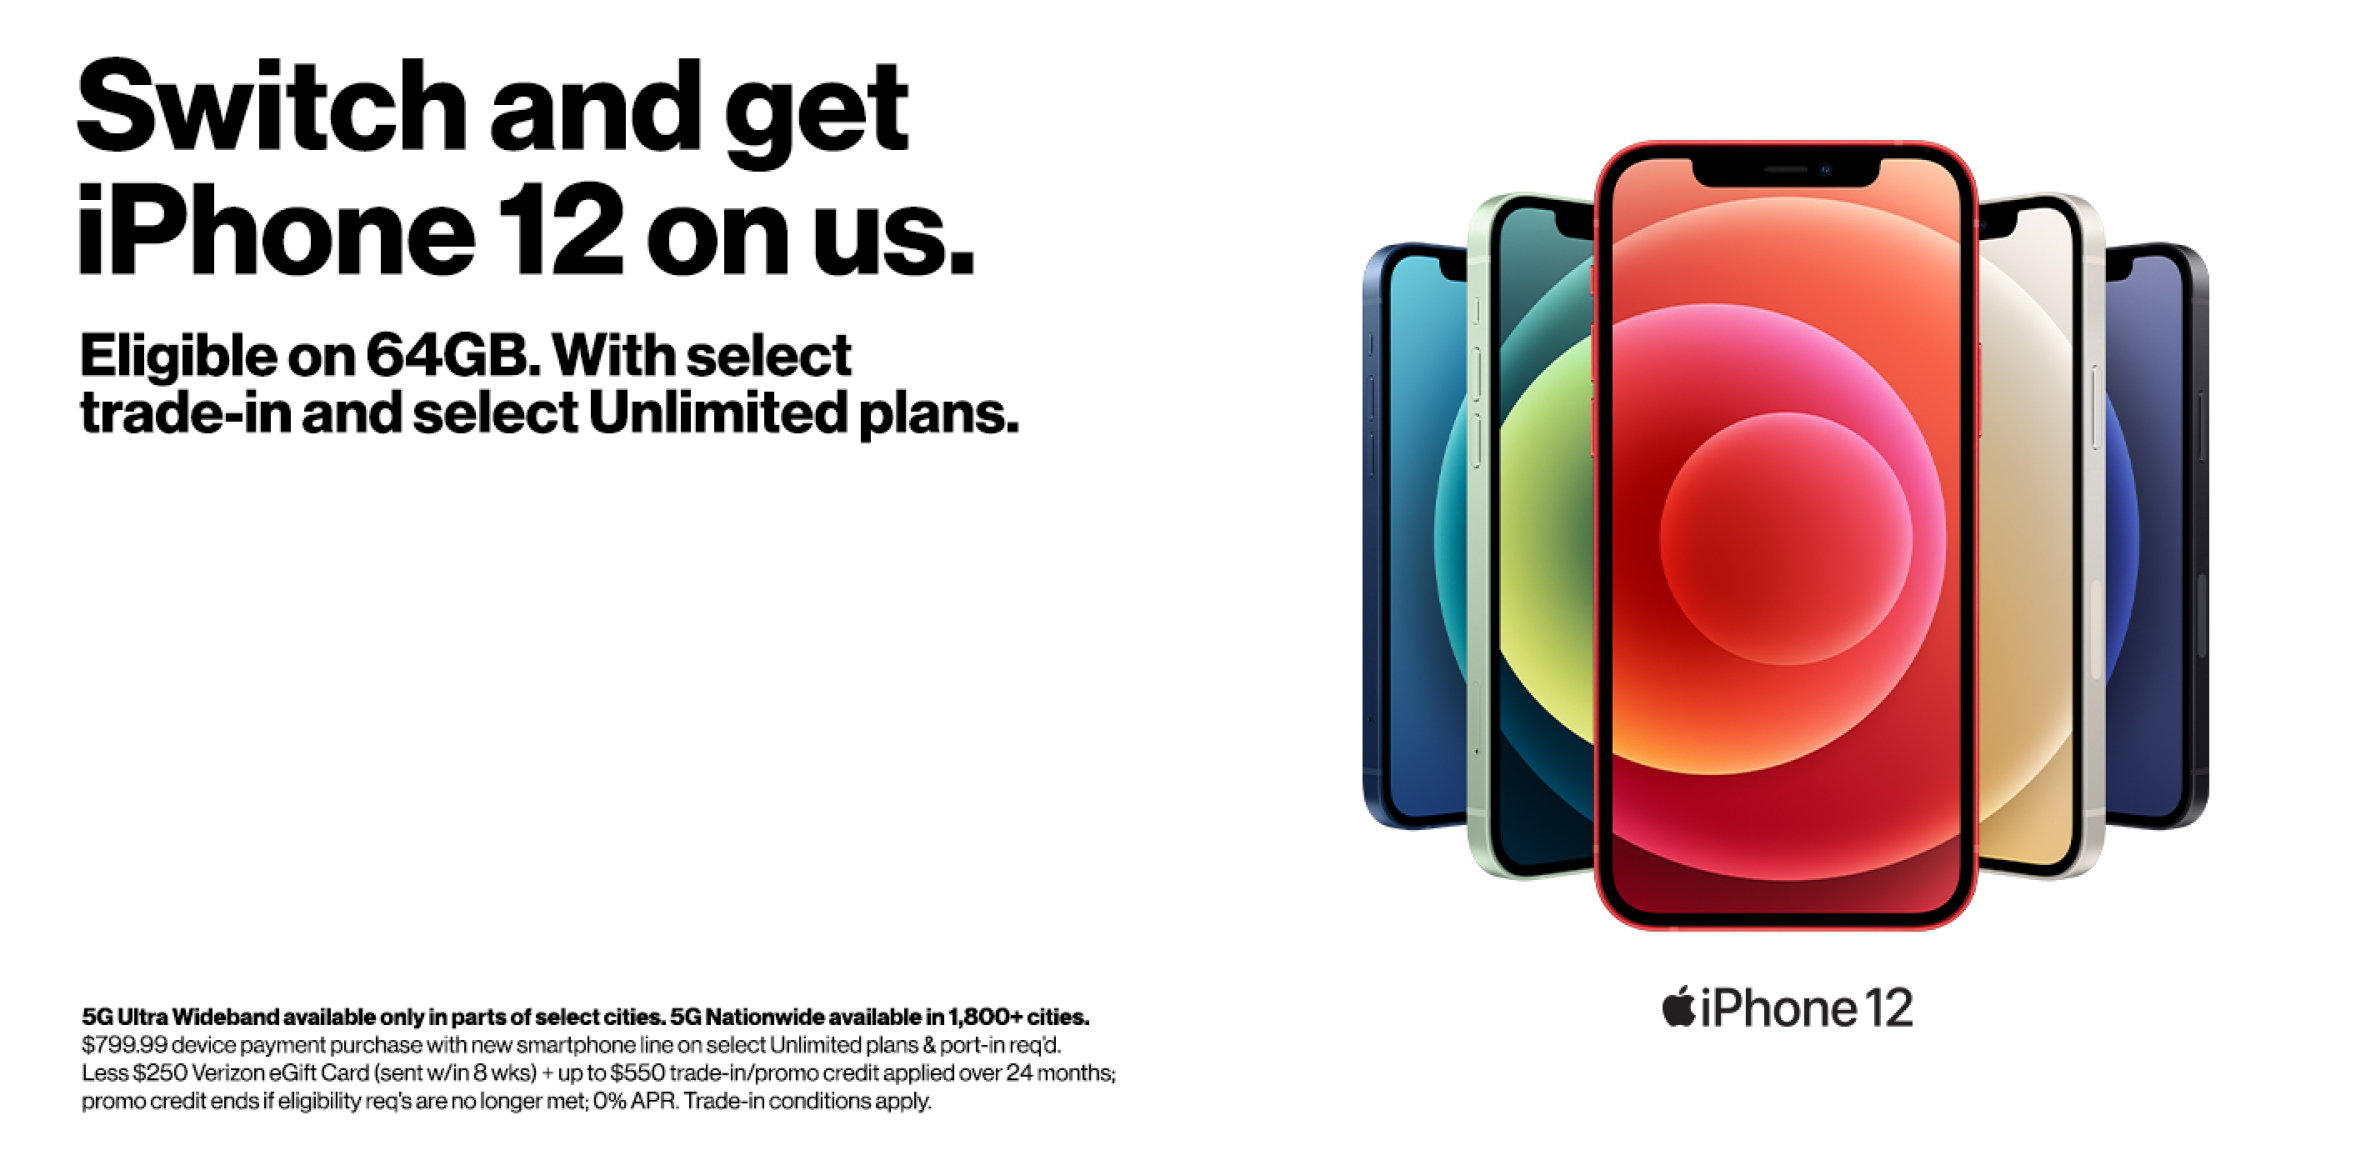 Switch and get iPhone 12 on us.